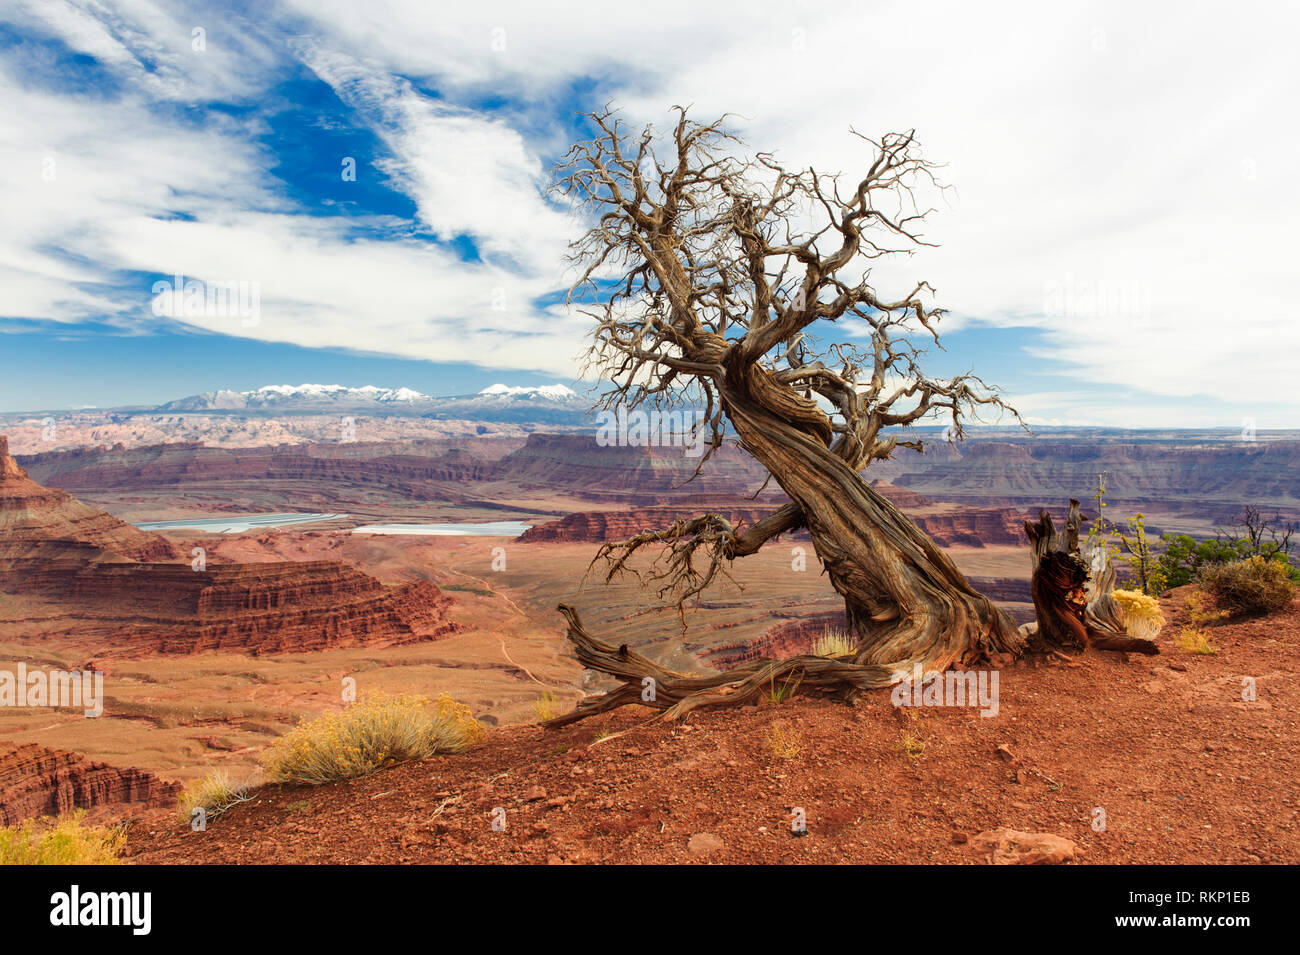 Dead juniper tree at Dead Horse Point State Park, Utah, USA. La Sal mountains in the background. - Stock Image